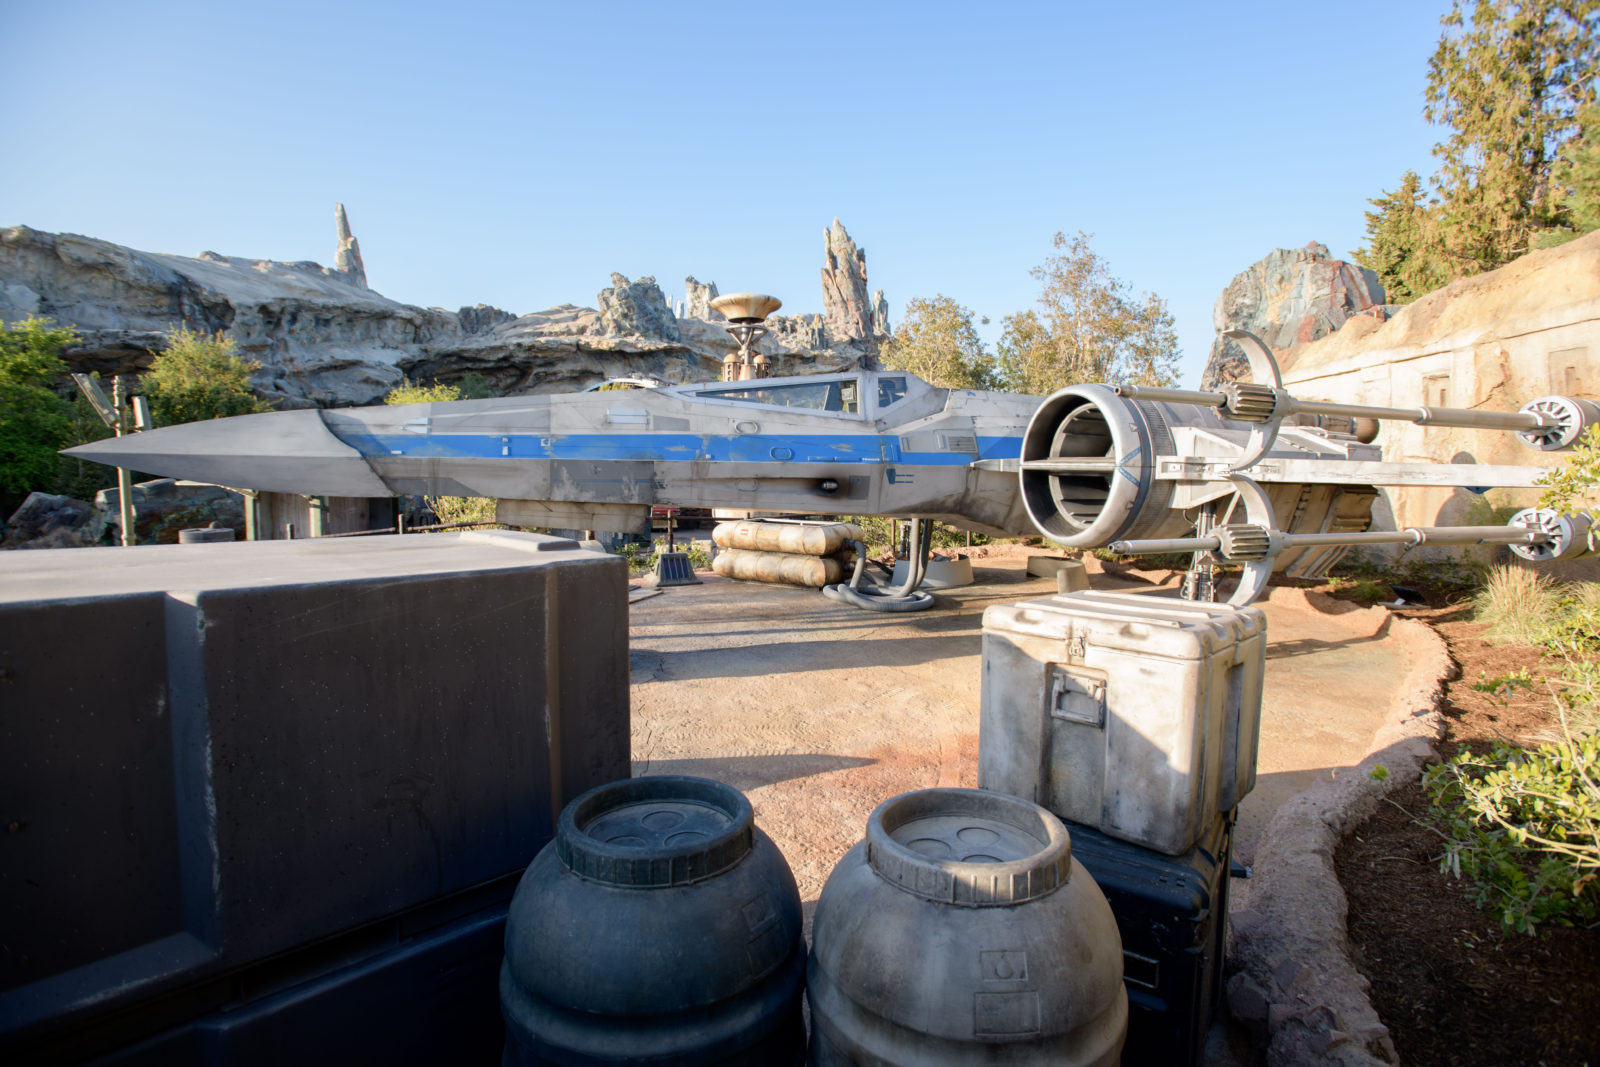 Star Wars: Galaxy's Edge Batuu Disney's Hollywood Studios x wing